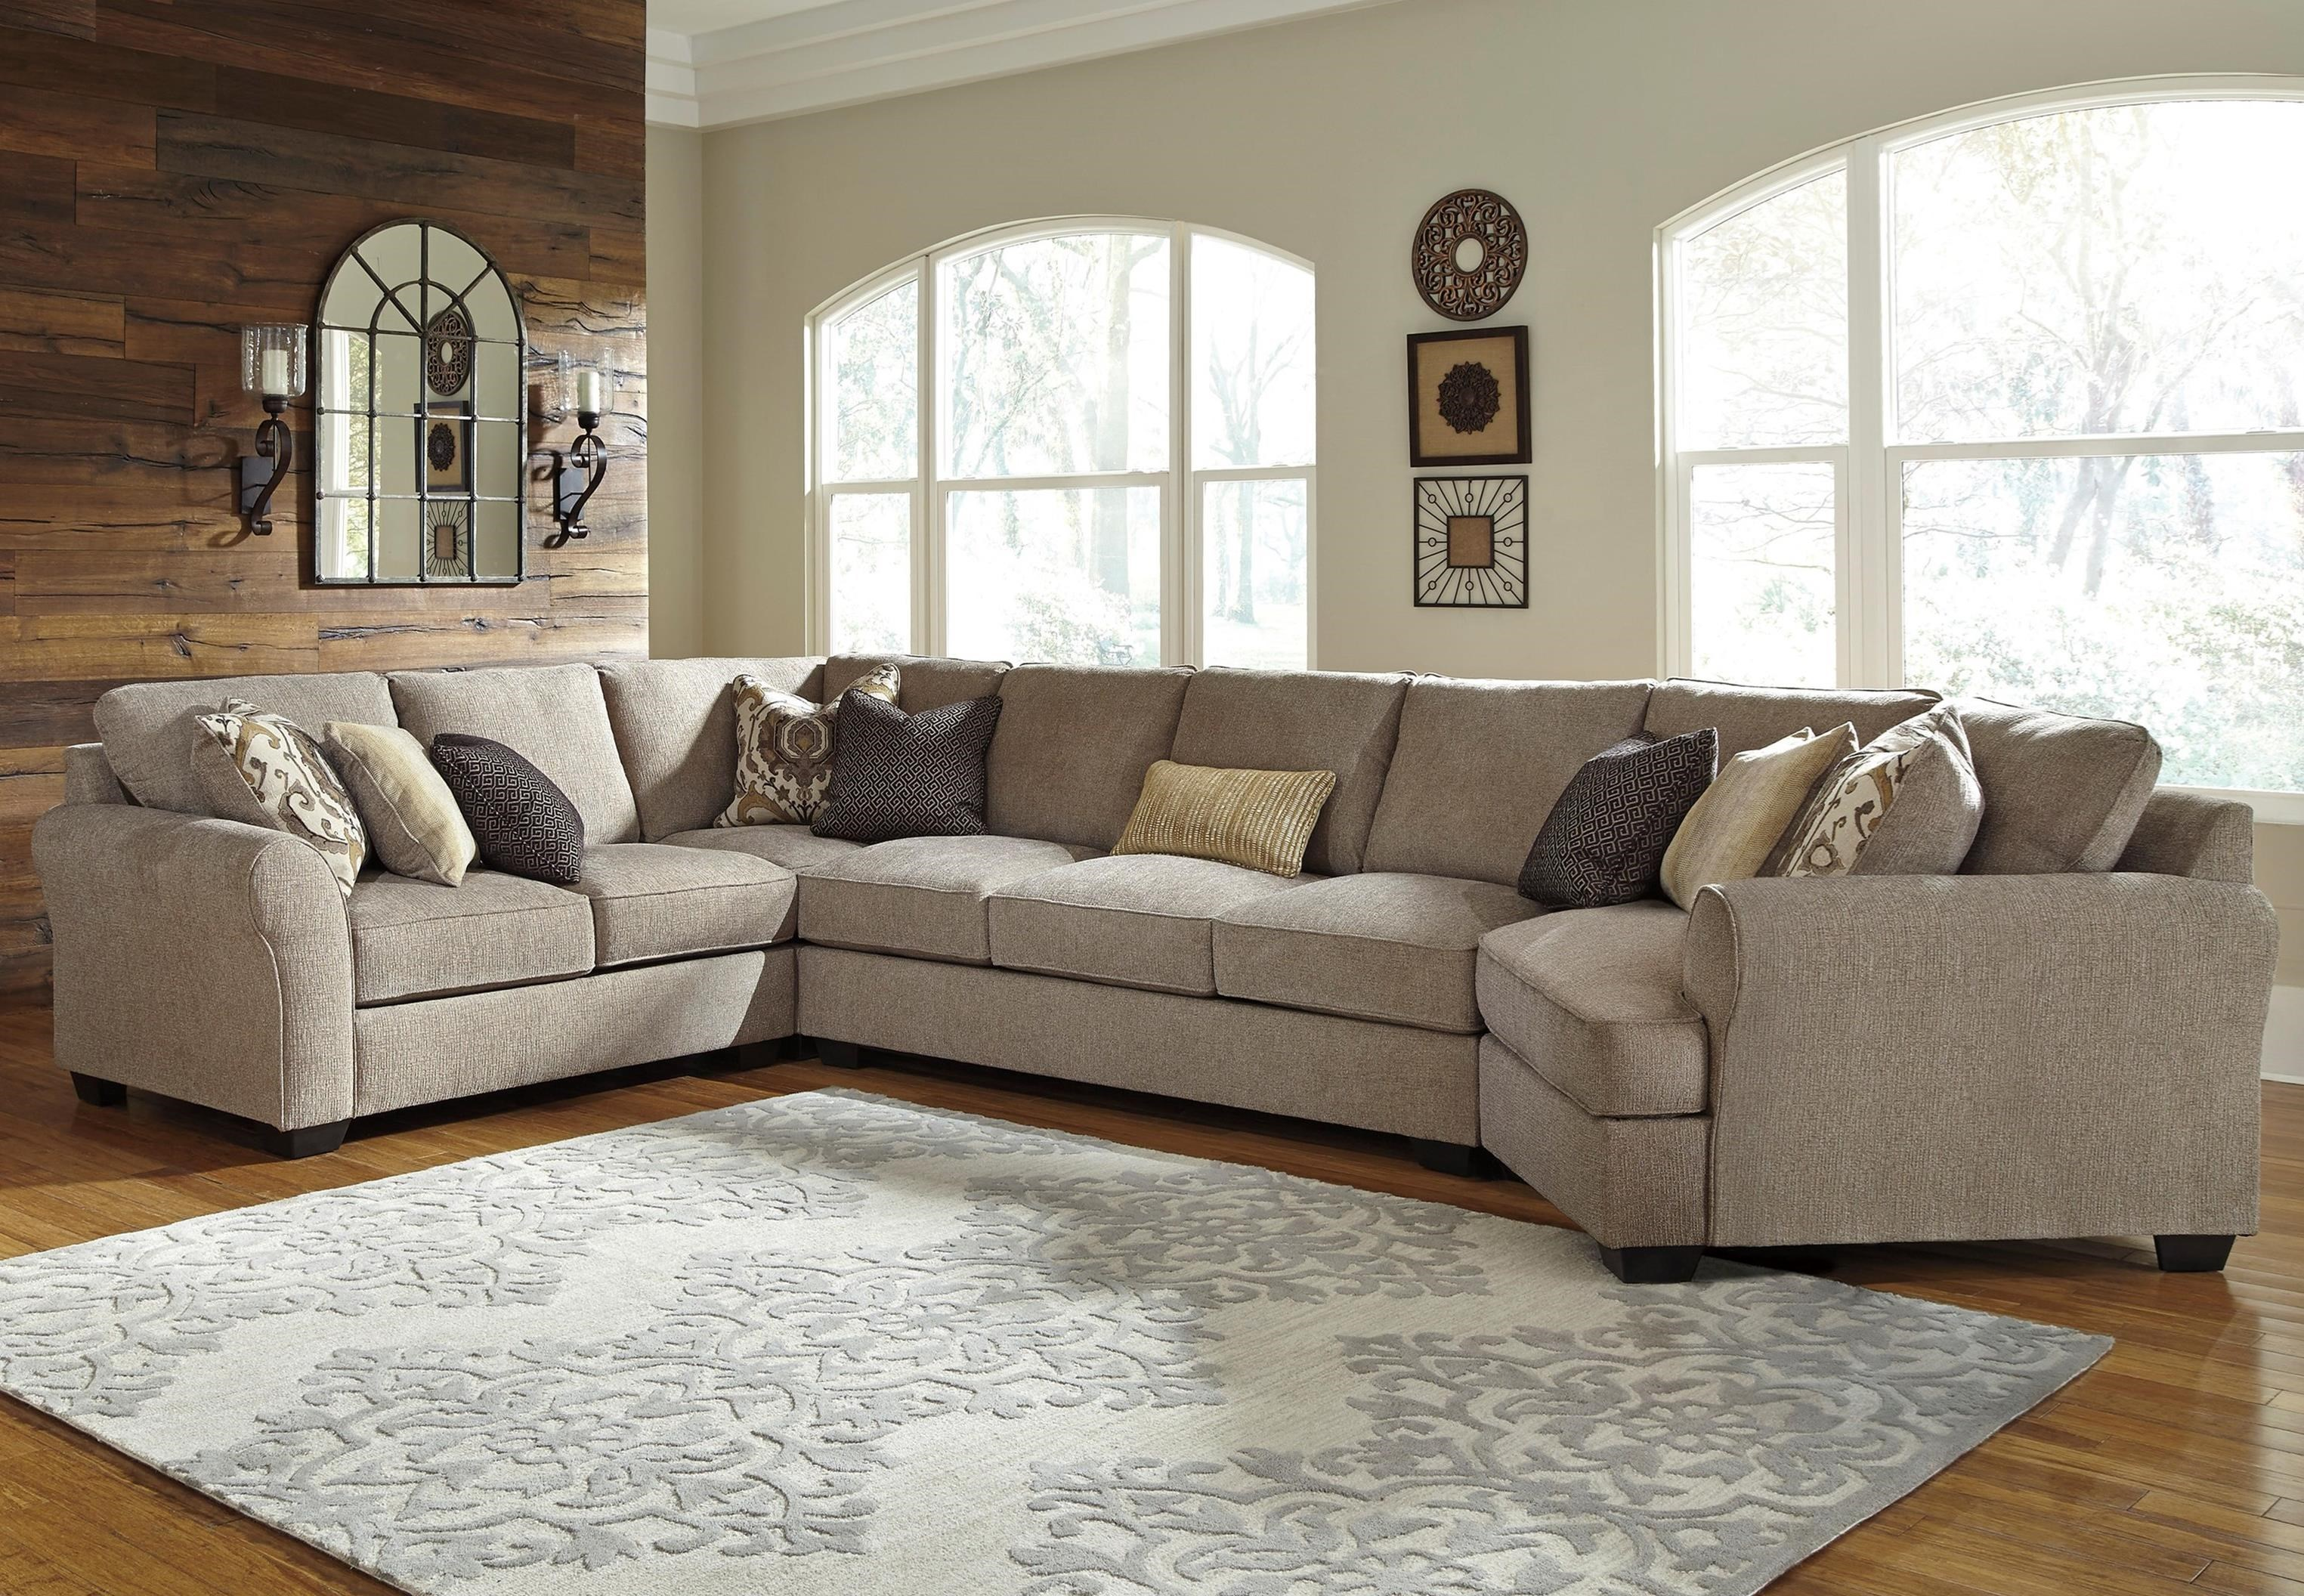 Benchcraft Pantomine 4 Piece Sectional With Right Cuddler U0026 Armless Sofa